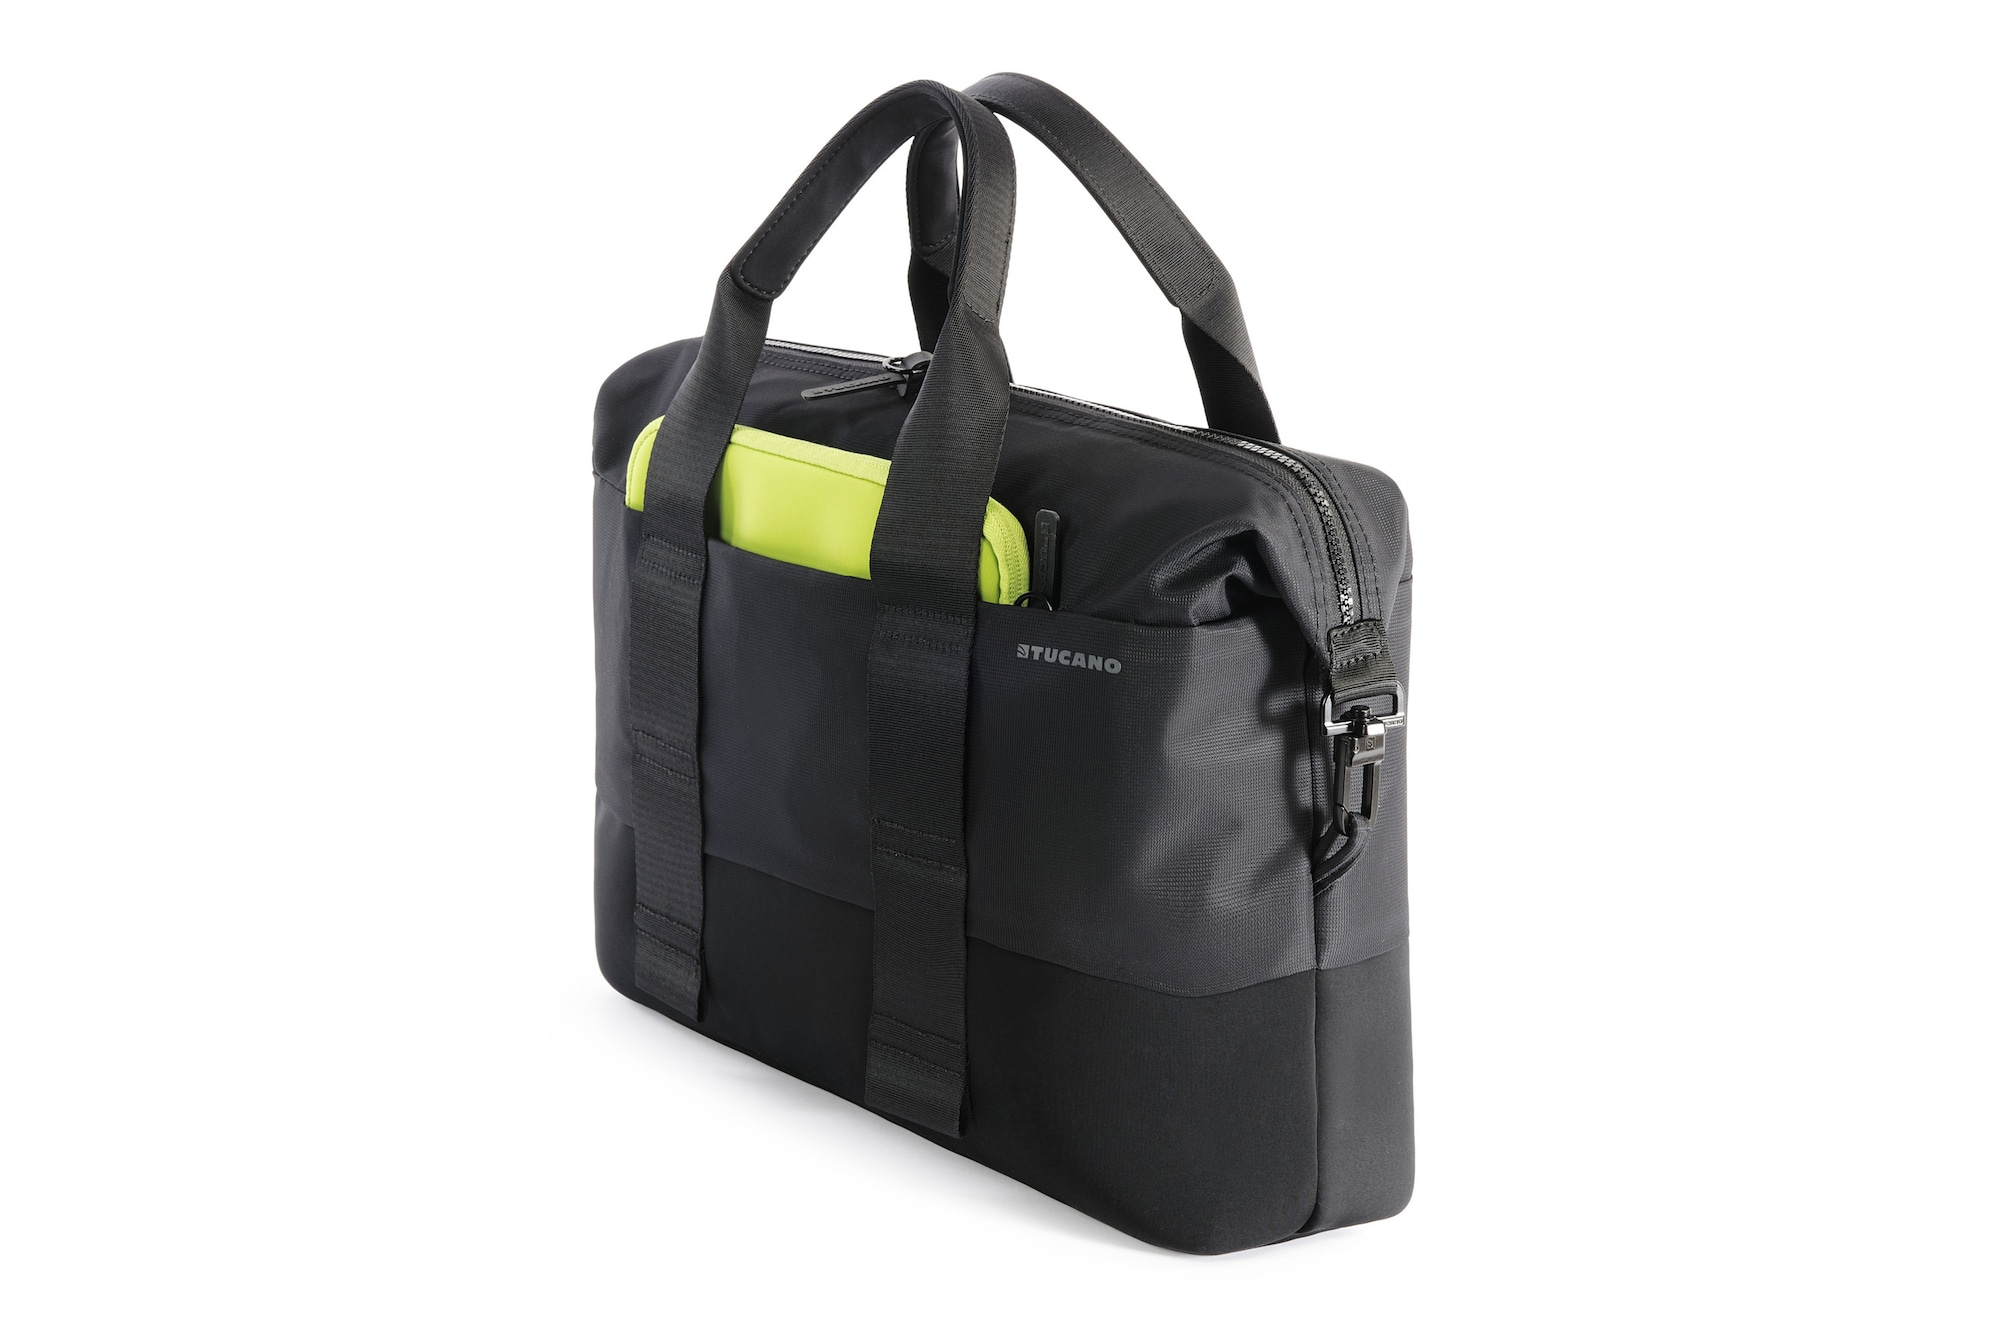 tucano - Aktentasche Laptop business slim bag